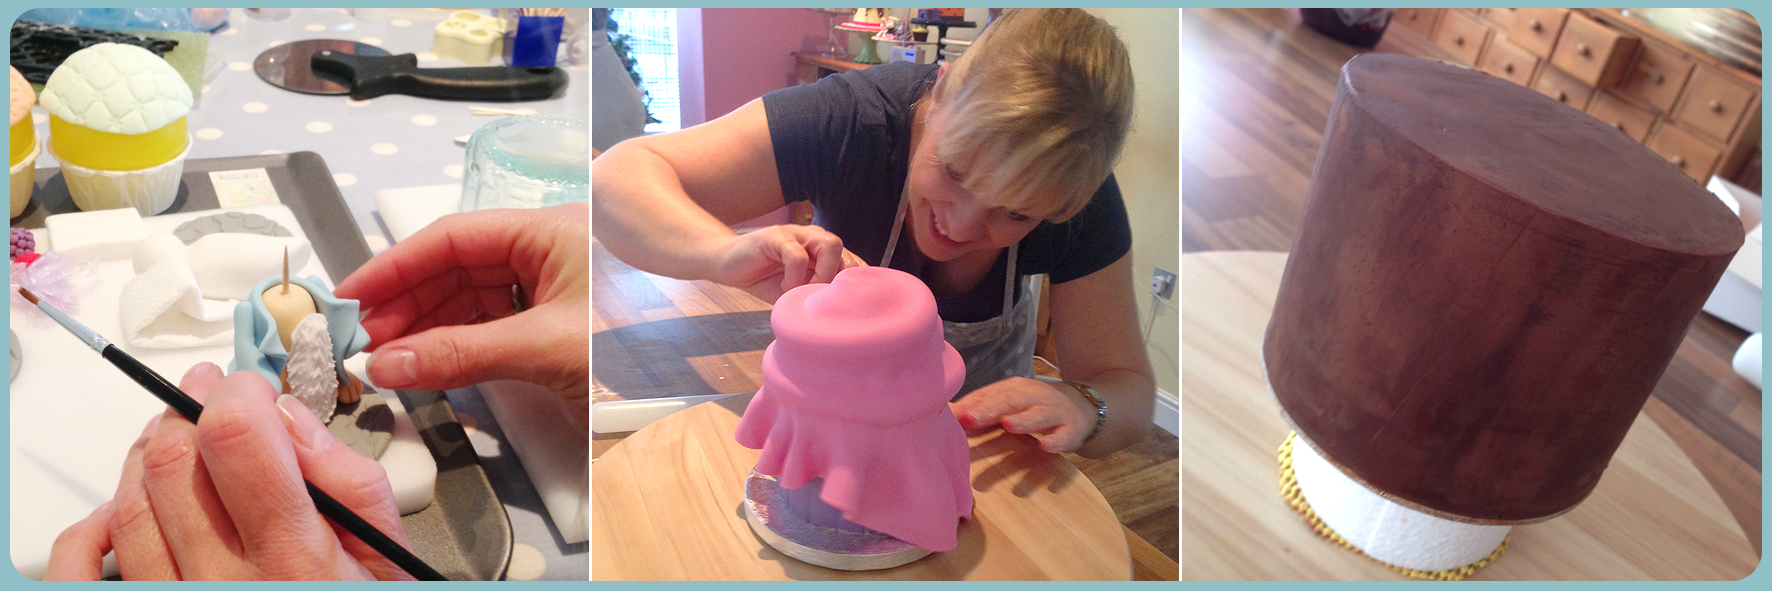 private tuition, one to one teaching, cake decorating, class, norwich, norfolk, ganache, cupcake, cake pop, cookie icing, royal icing